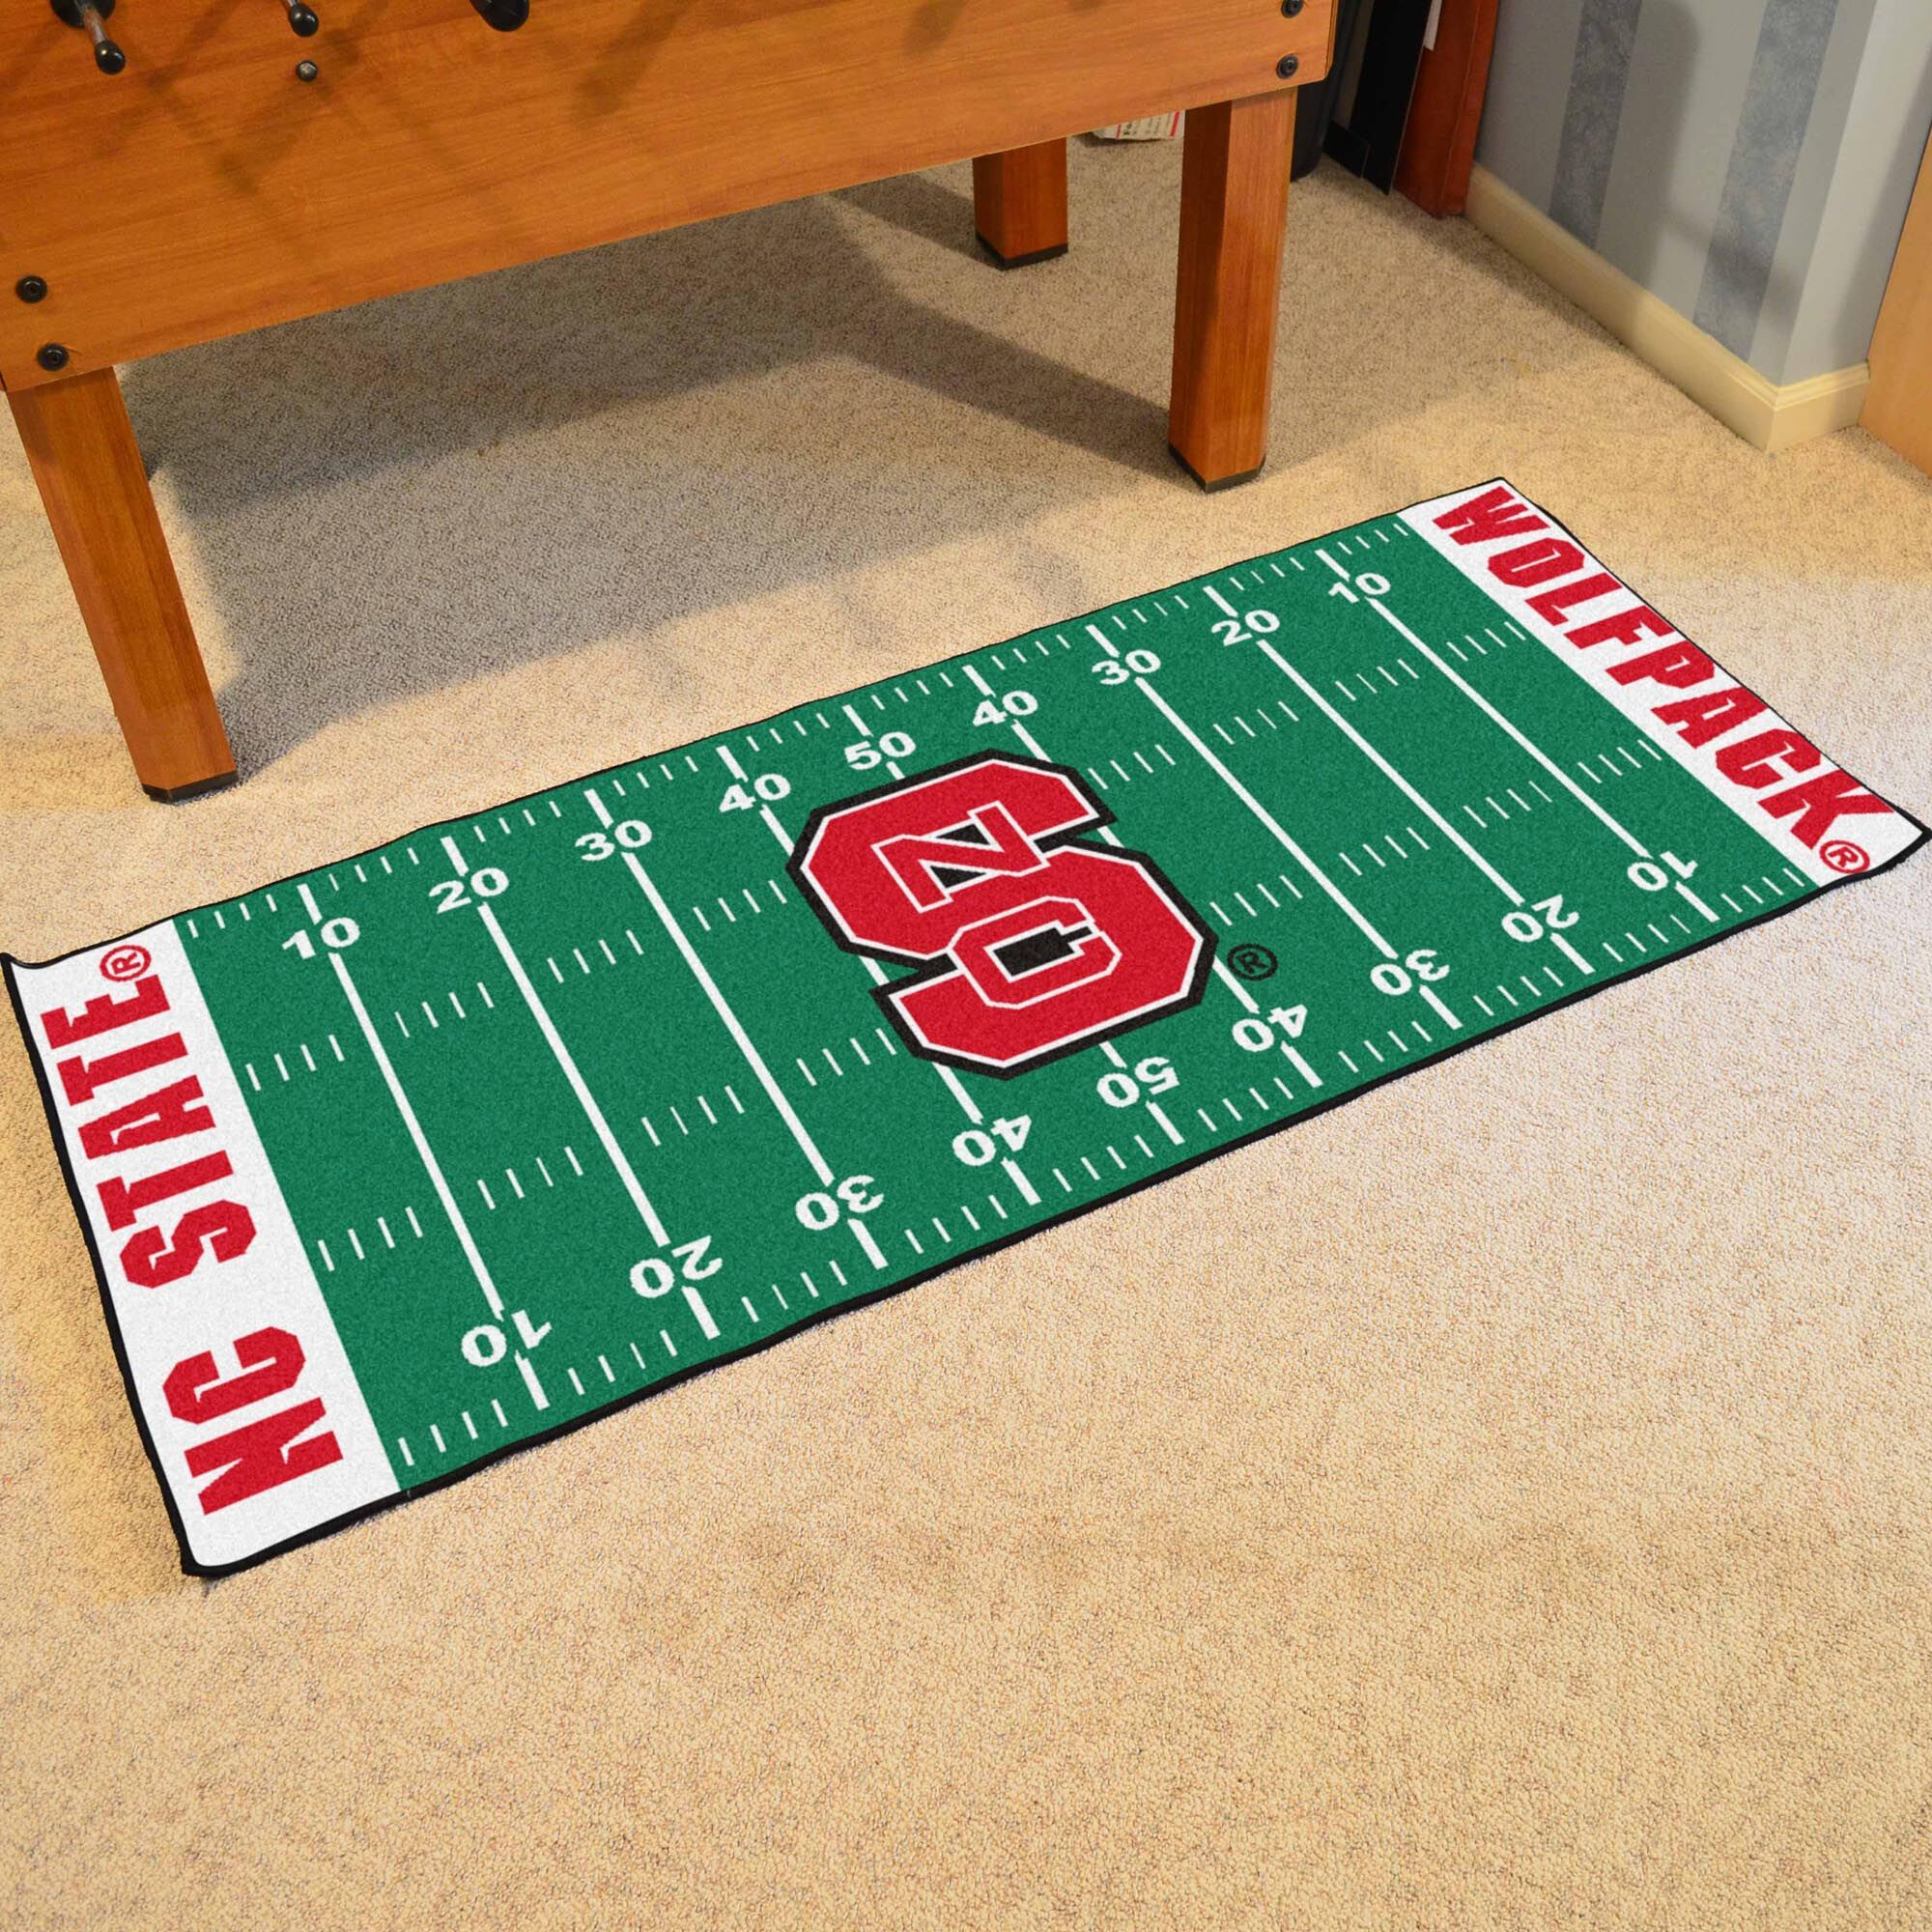 Collegiate US Military Academy Area Rug NCAA Team: North Carolina State University_1